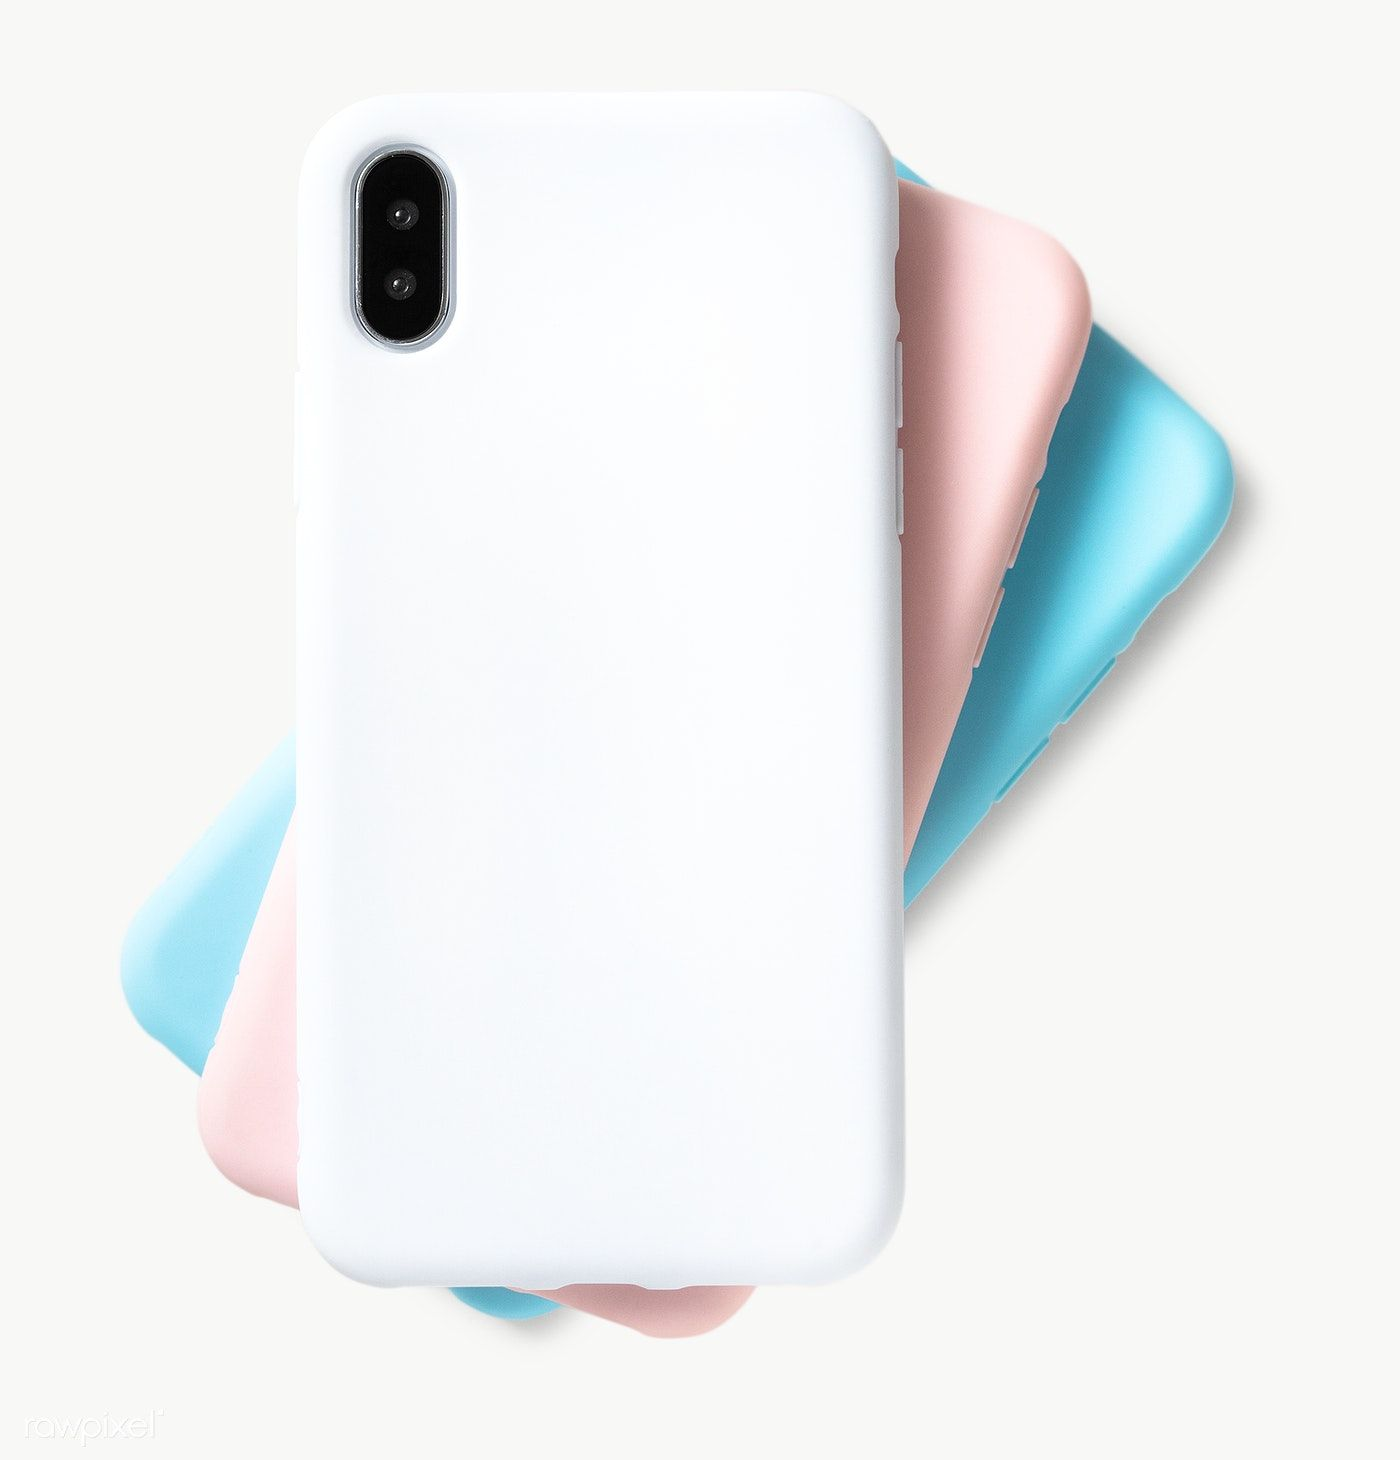 White Silicone Phone Case Mockup Transparent Png Premium Image By Rawpixel Com Eyeeyeview Silicone Phone Case Design Case Case